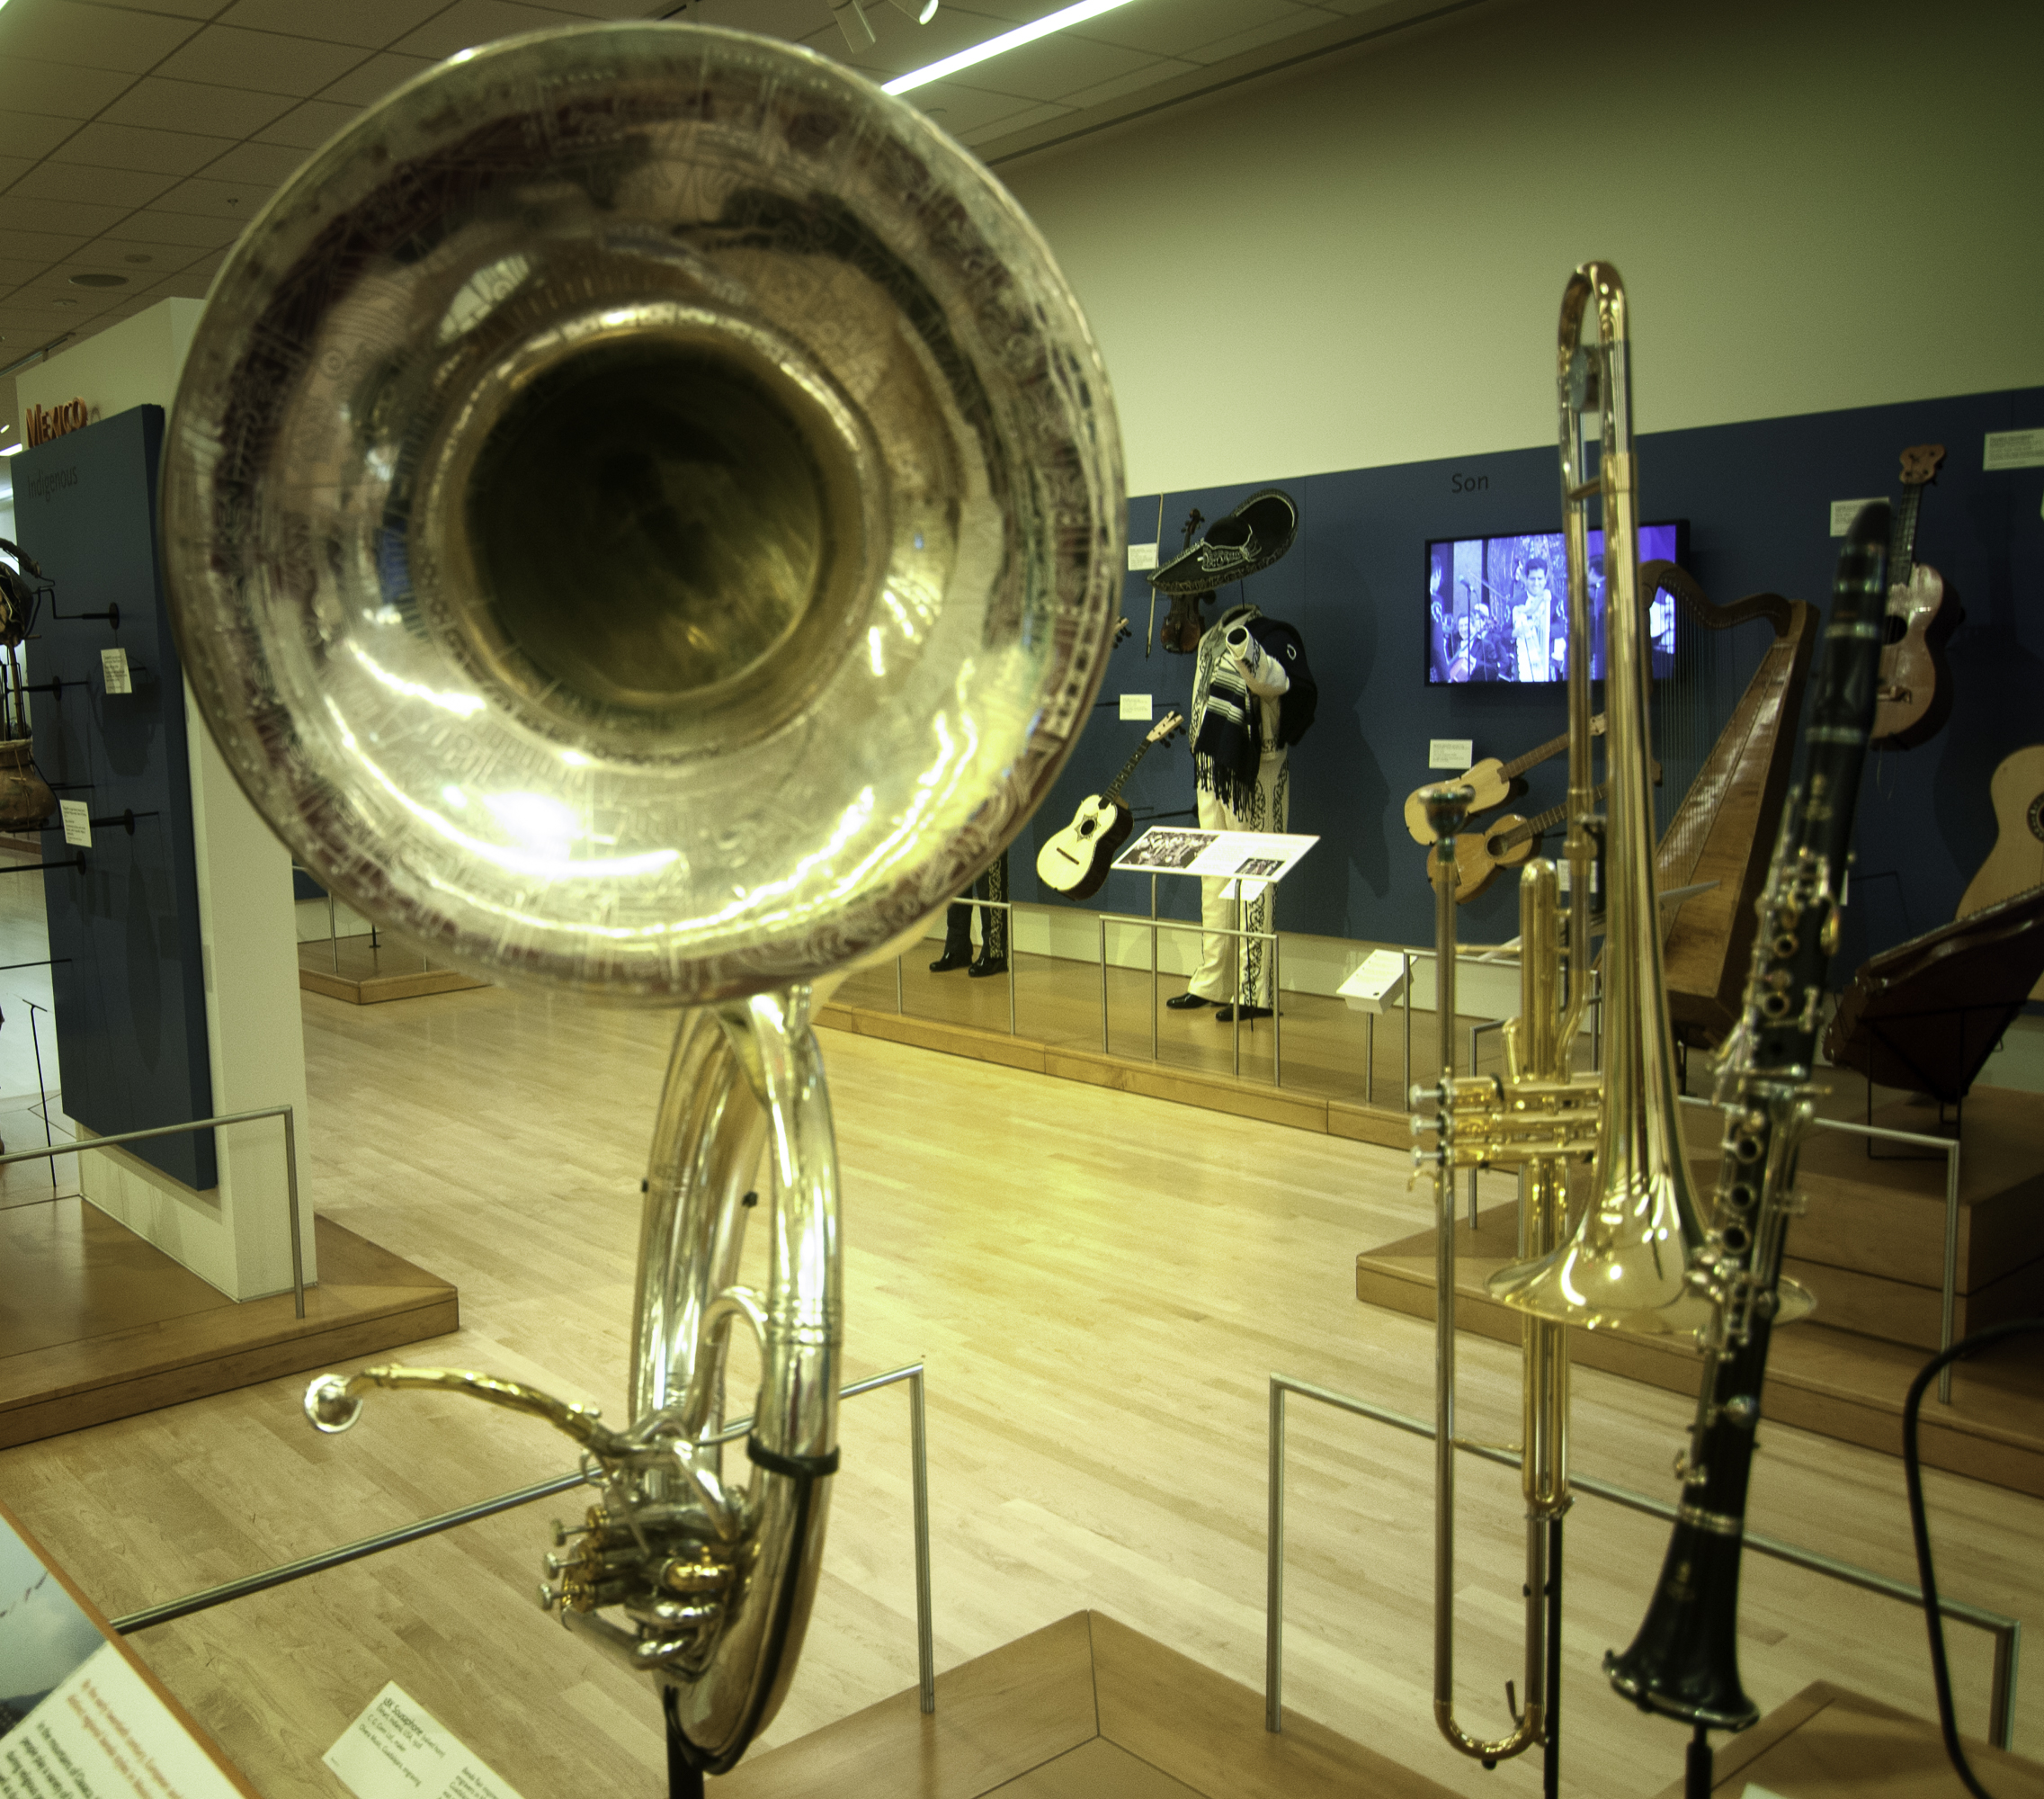 Sousaphone On Display At The Musical Instrument Museum (mim) In Phoenix